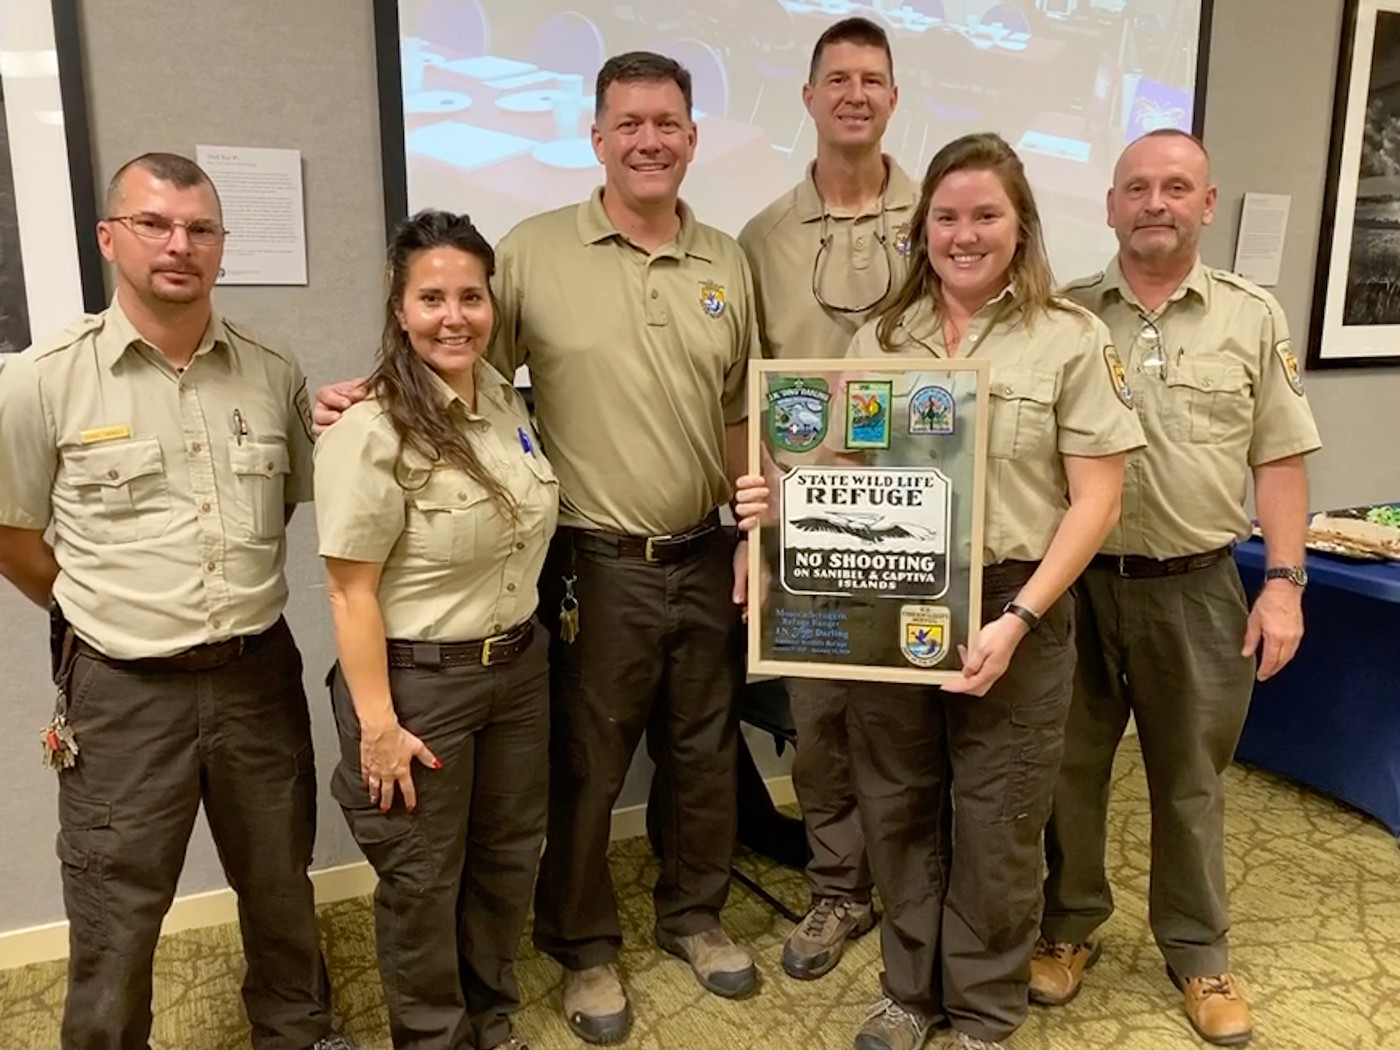 """6 people in FWS uniform hold plaque that reads """"State Wildlife Refuge/No Shooting/on Sanibel & Captiva/Islands"""" with smaller type and logos"""